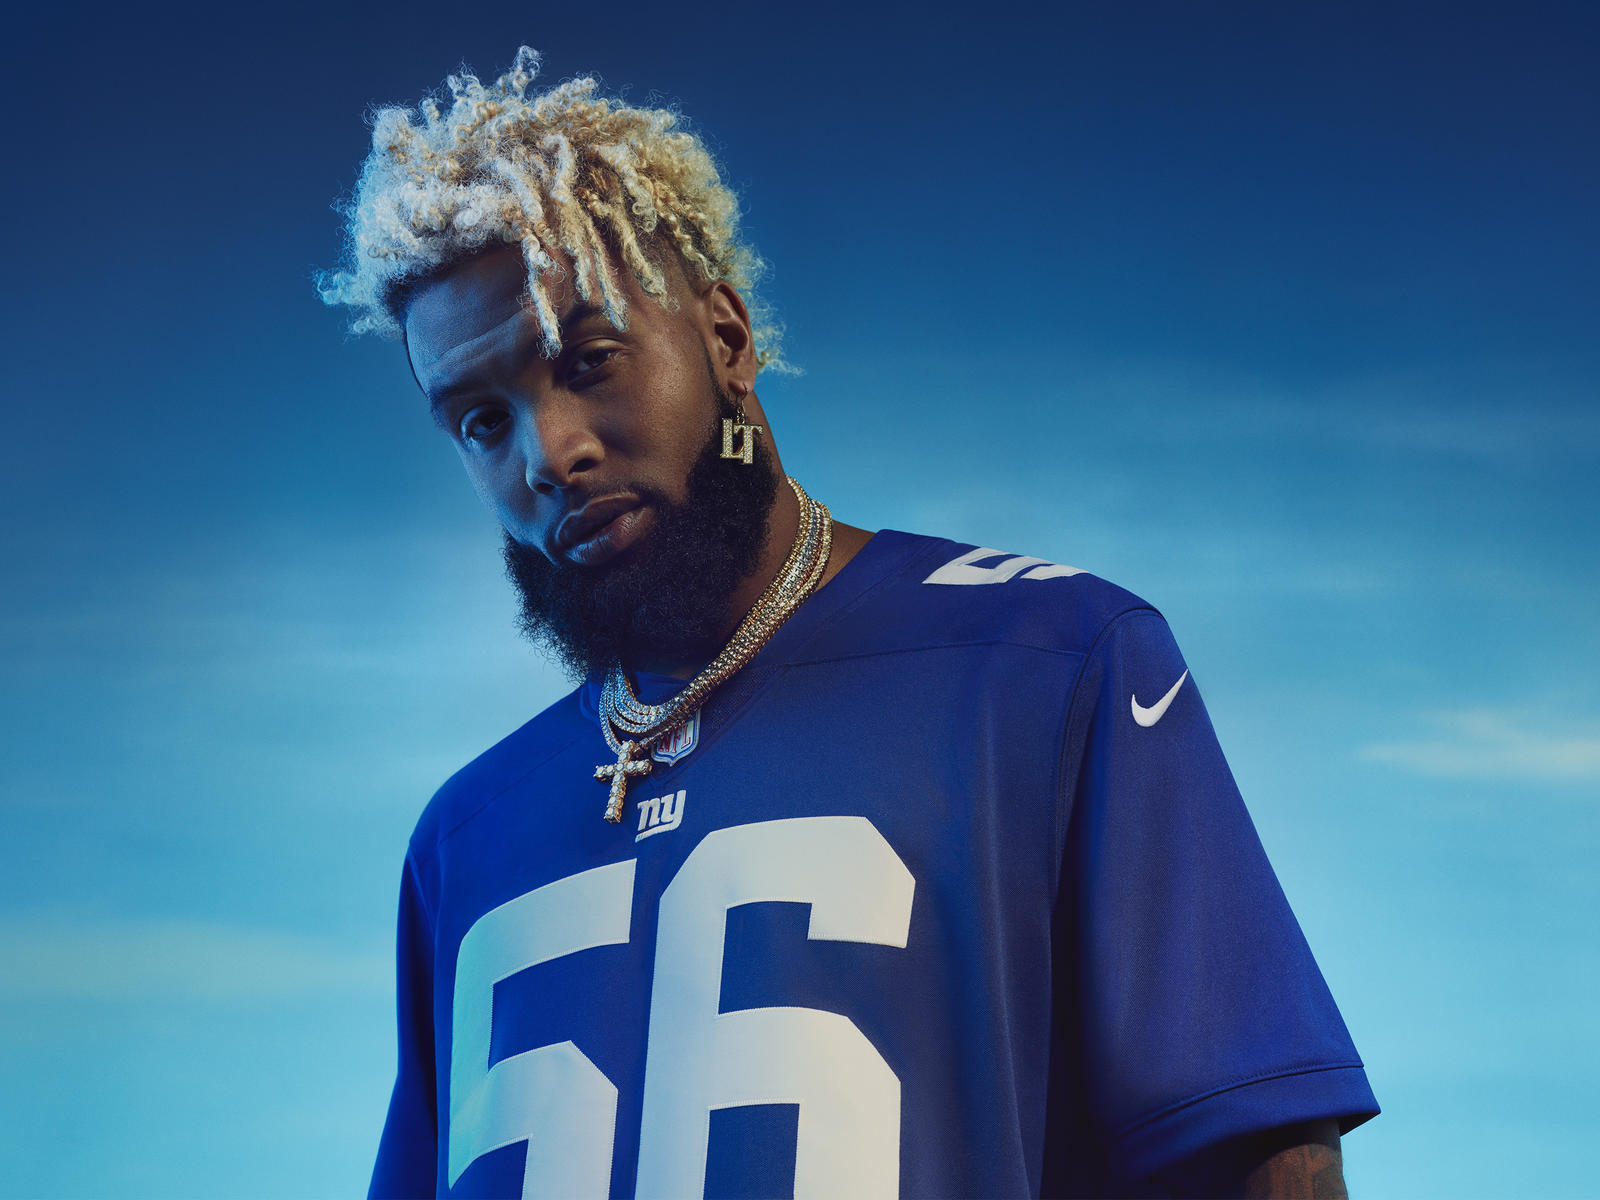 Represent, Represent: Honor NFL Greats with Iconic Jerseys - Nike News